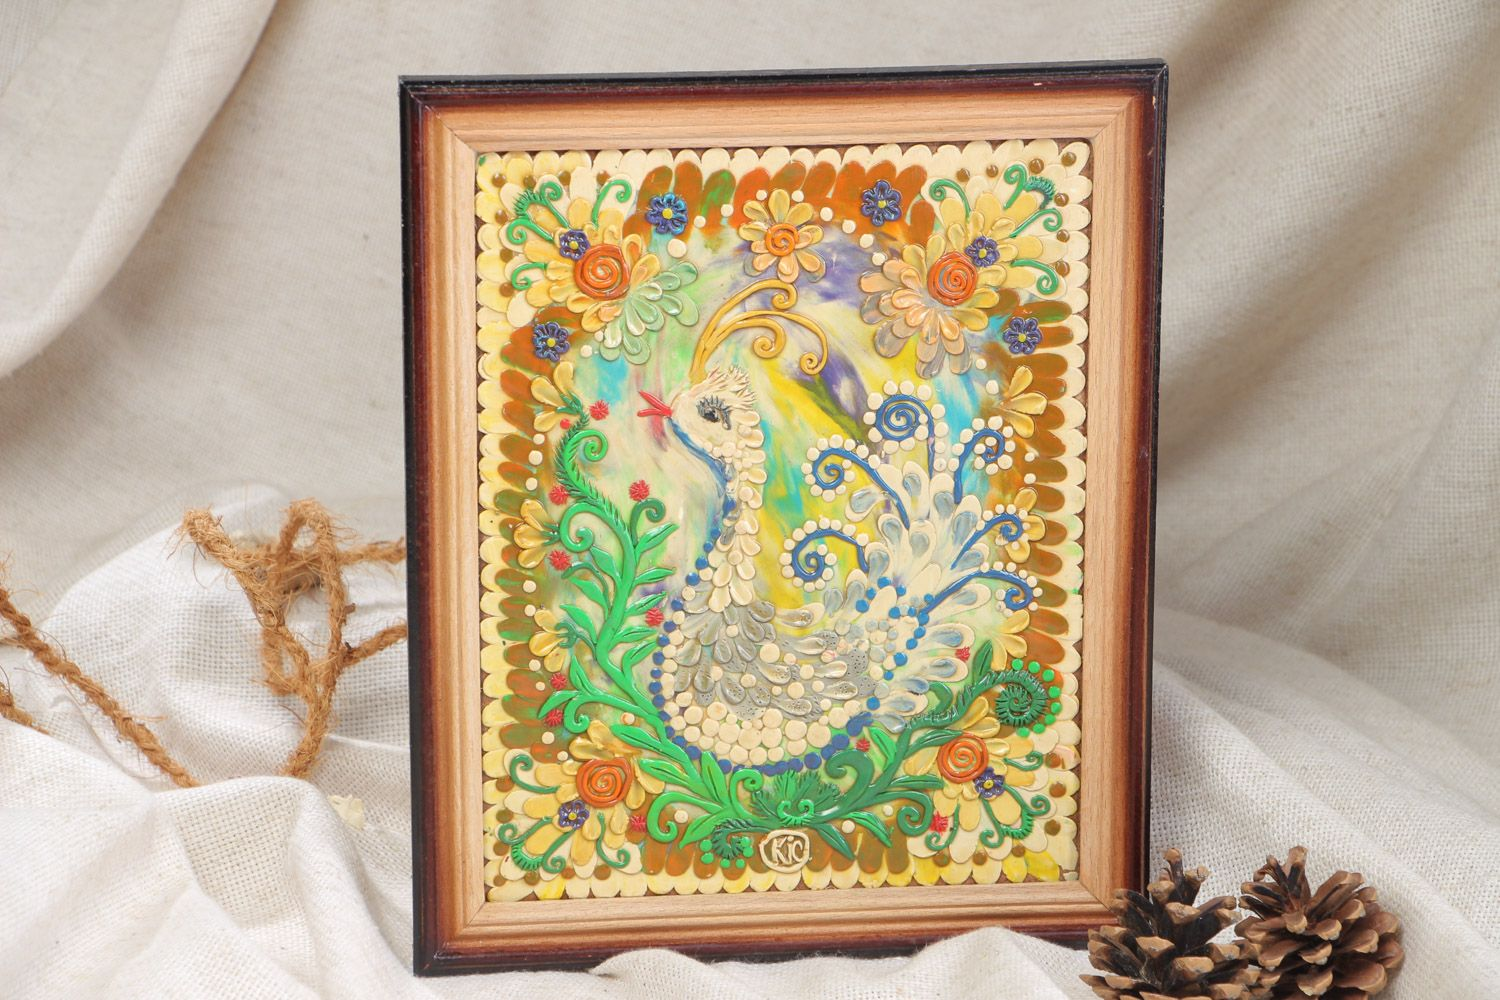 MADEHEART > Handmade decorative wall hanging panel painted with ...